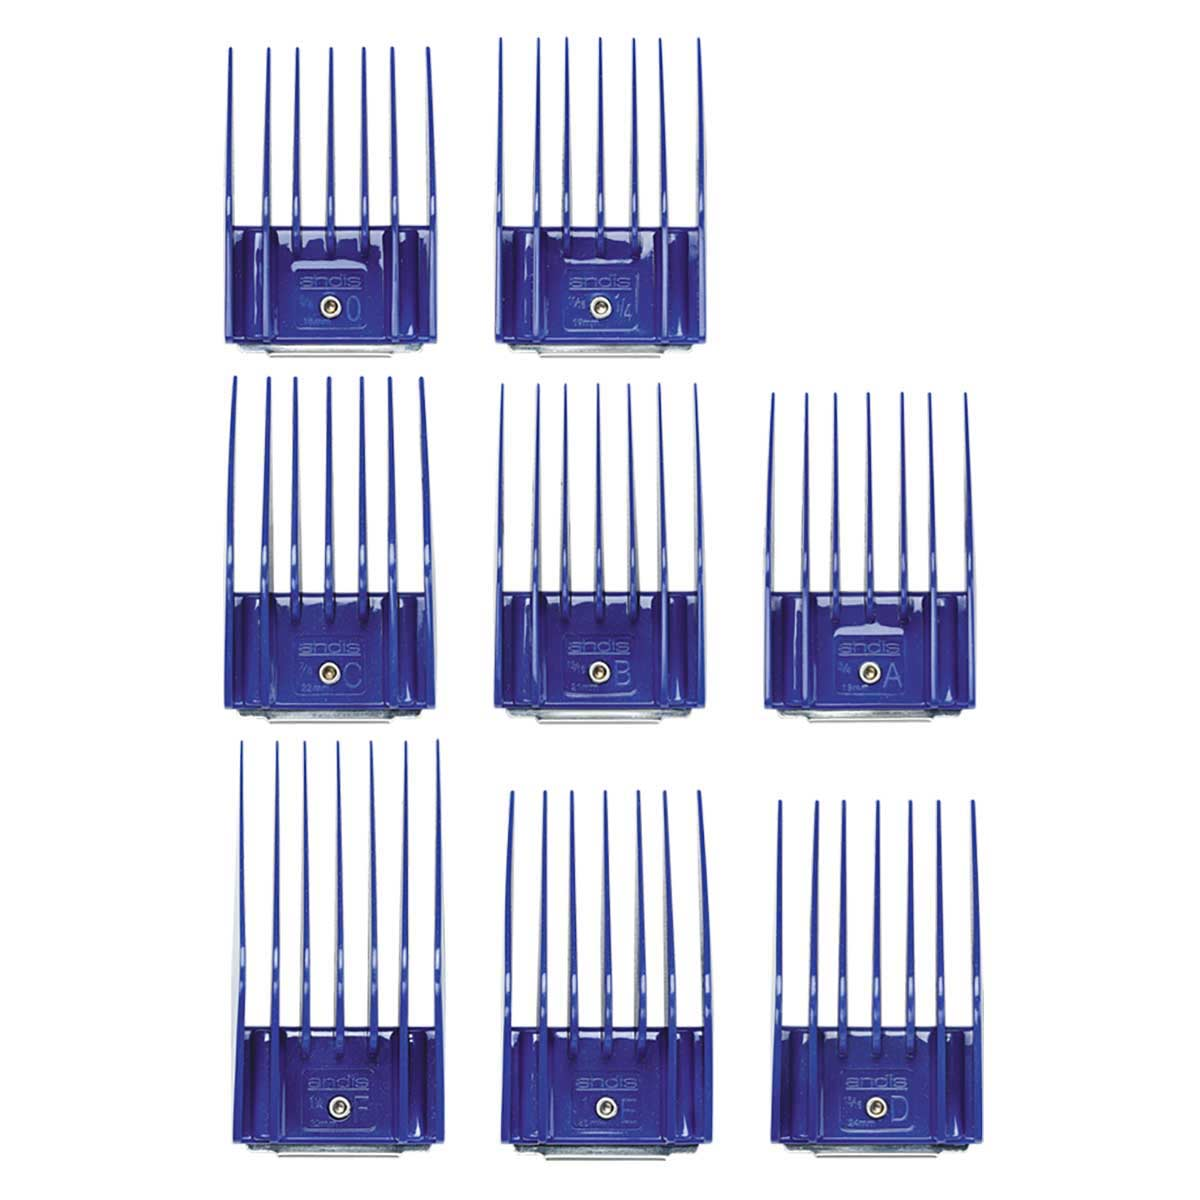 Buy Andis 8 Piece Snap-On Comb Set - Large at Ryan's Pet Supplies